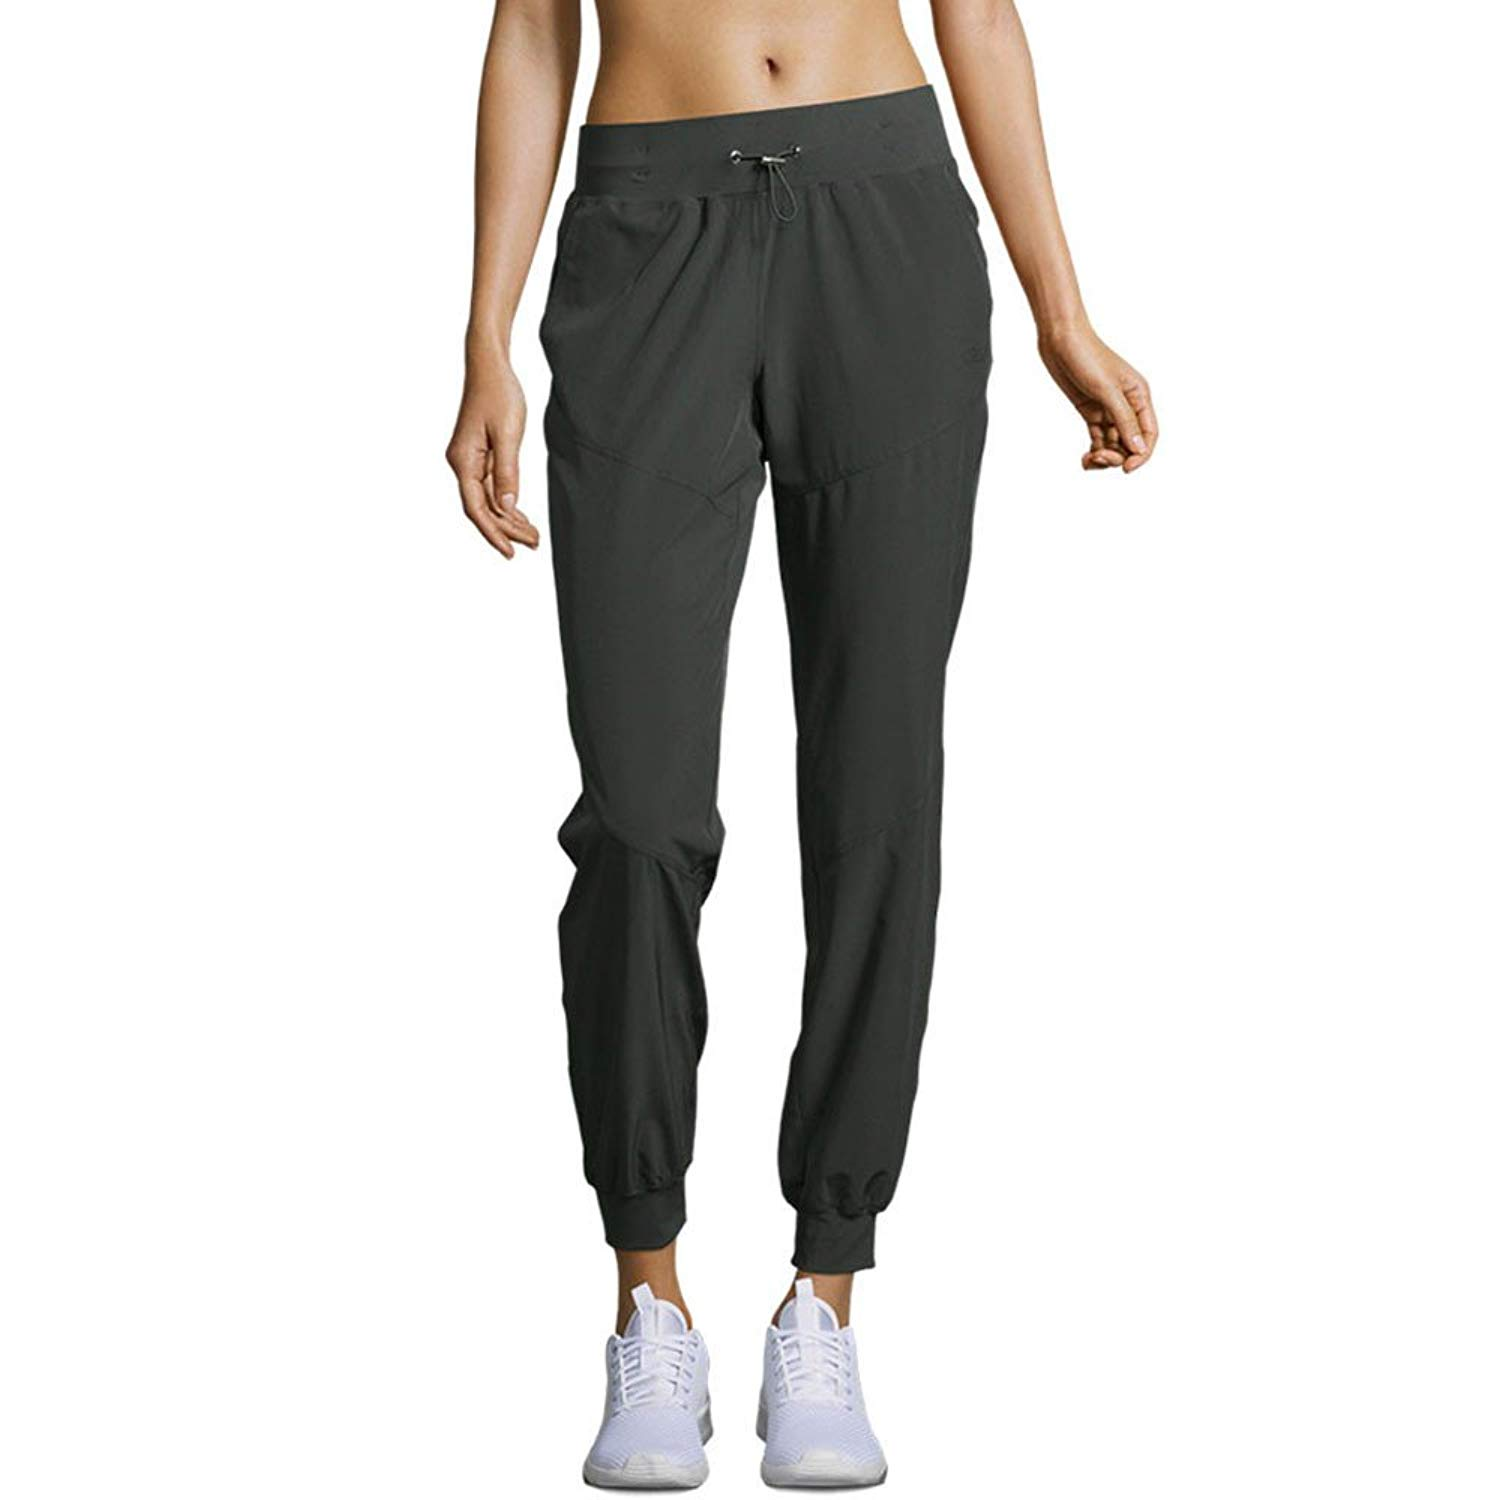 4caef00d4874 Get Quotations · Casall Core Woven Women s Training Pants - SS18